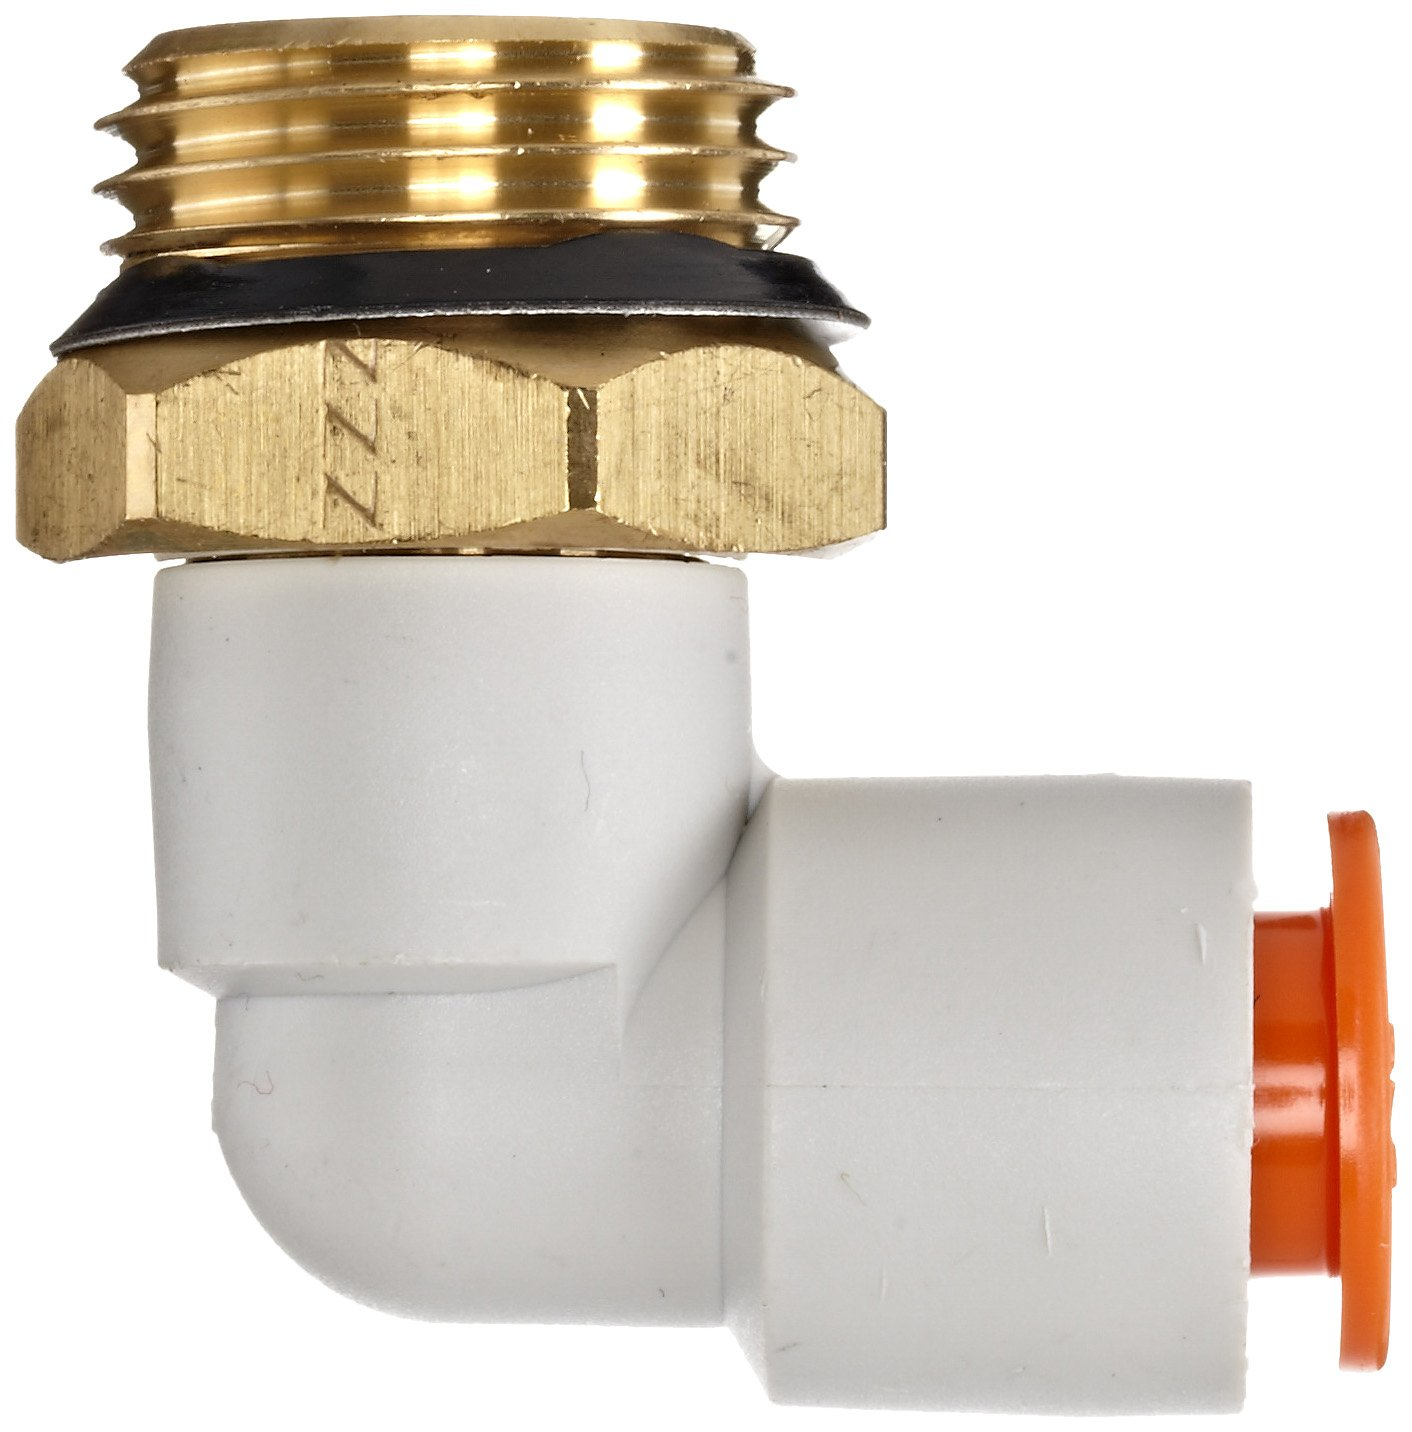 Circular Connector C48-06R18-14S9-406 Contacts Not Supplied Crimp Socket C48-06R18-14S9-406 14 Contacts Straight Plug C48 Series